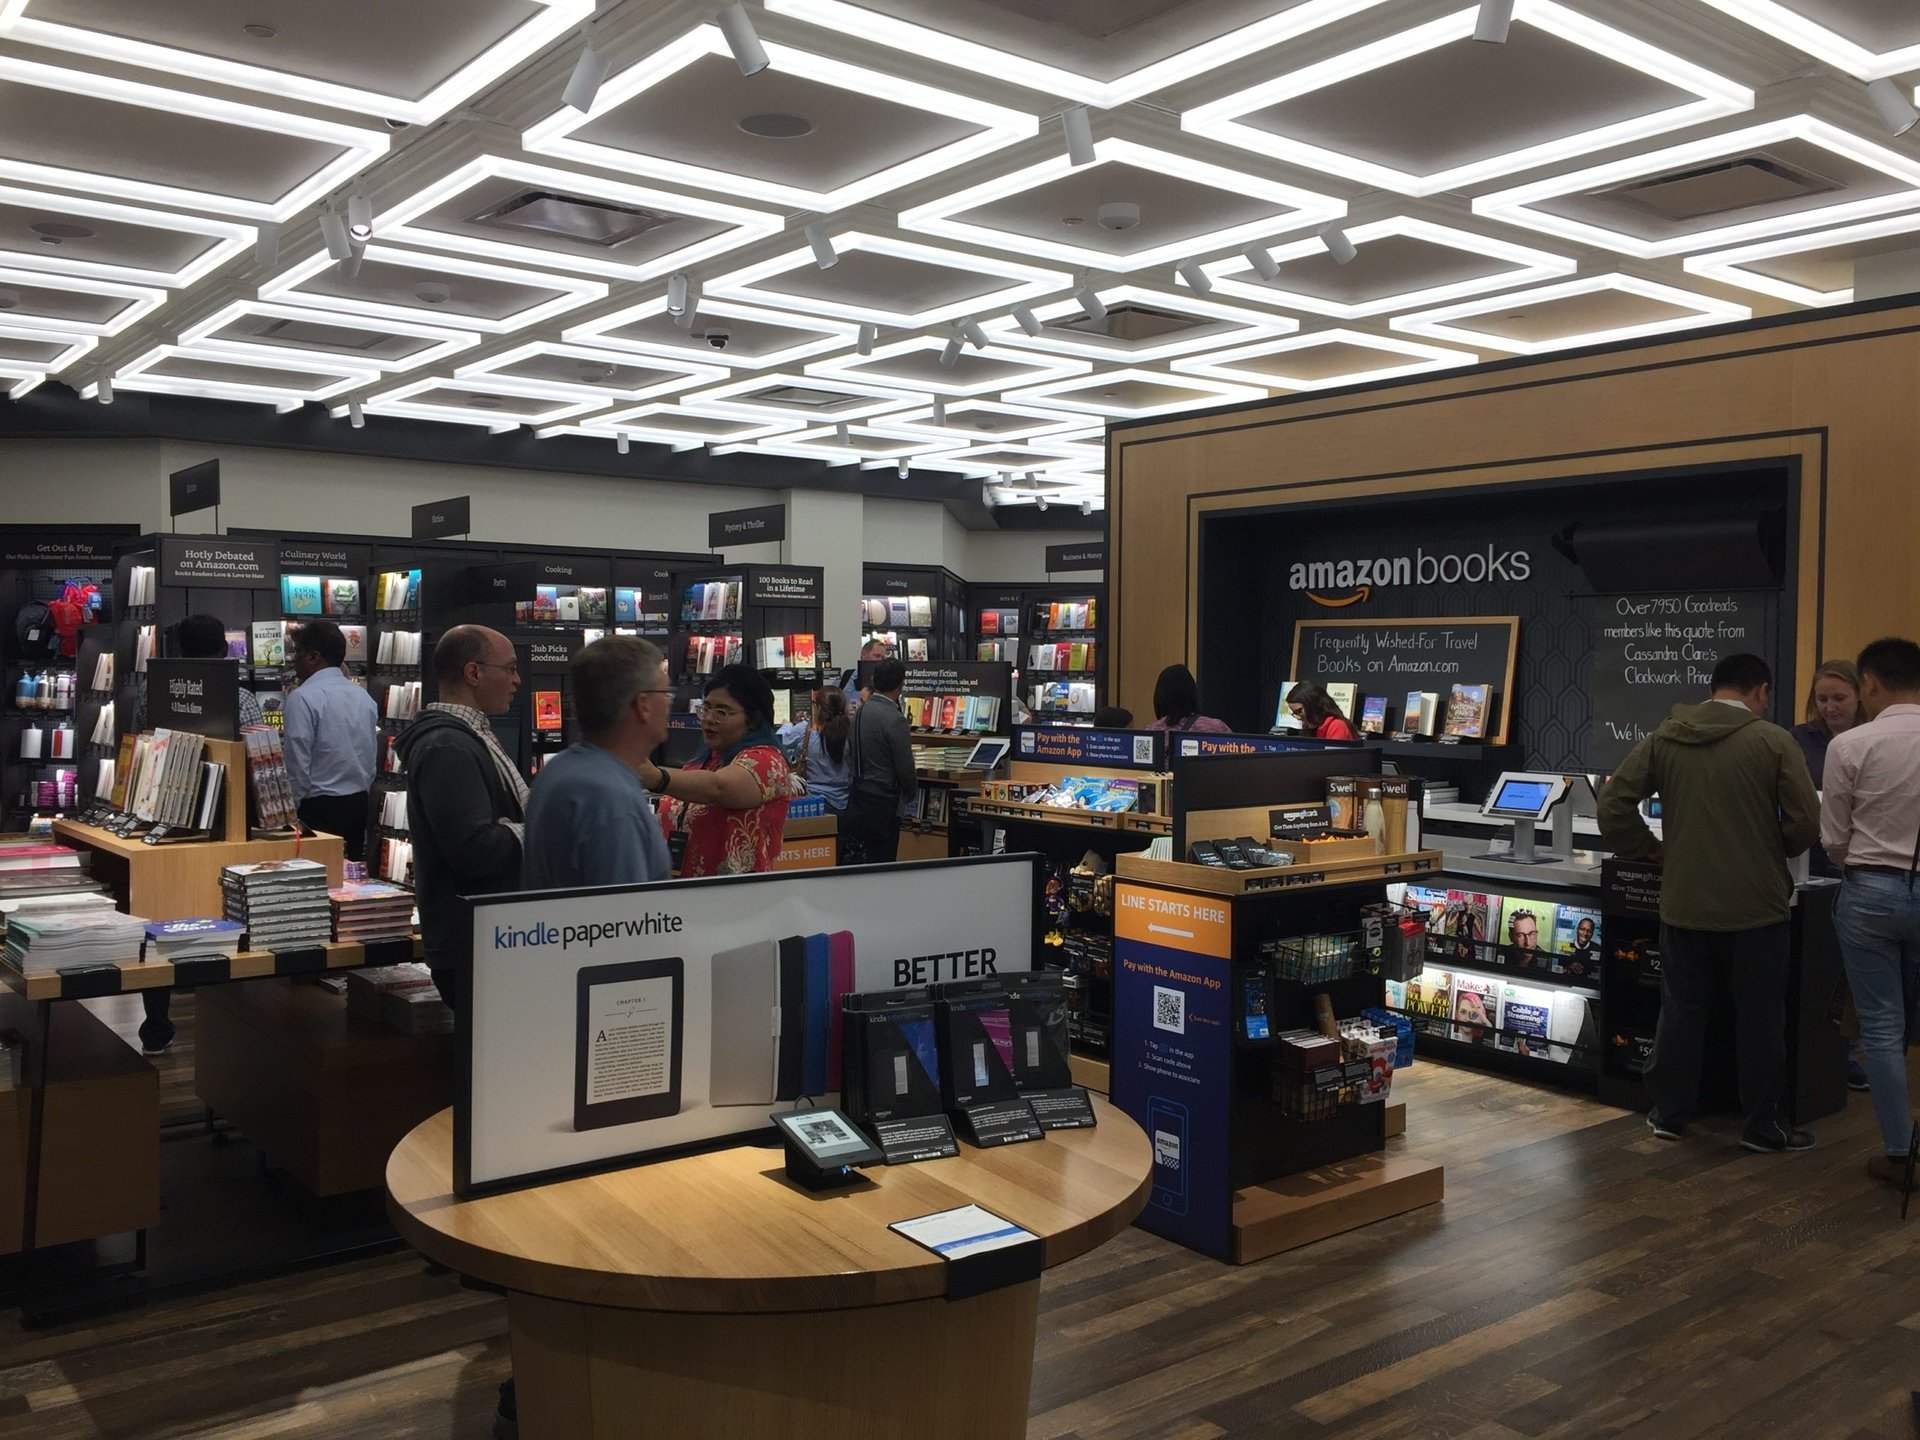 Amazon Books store